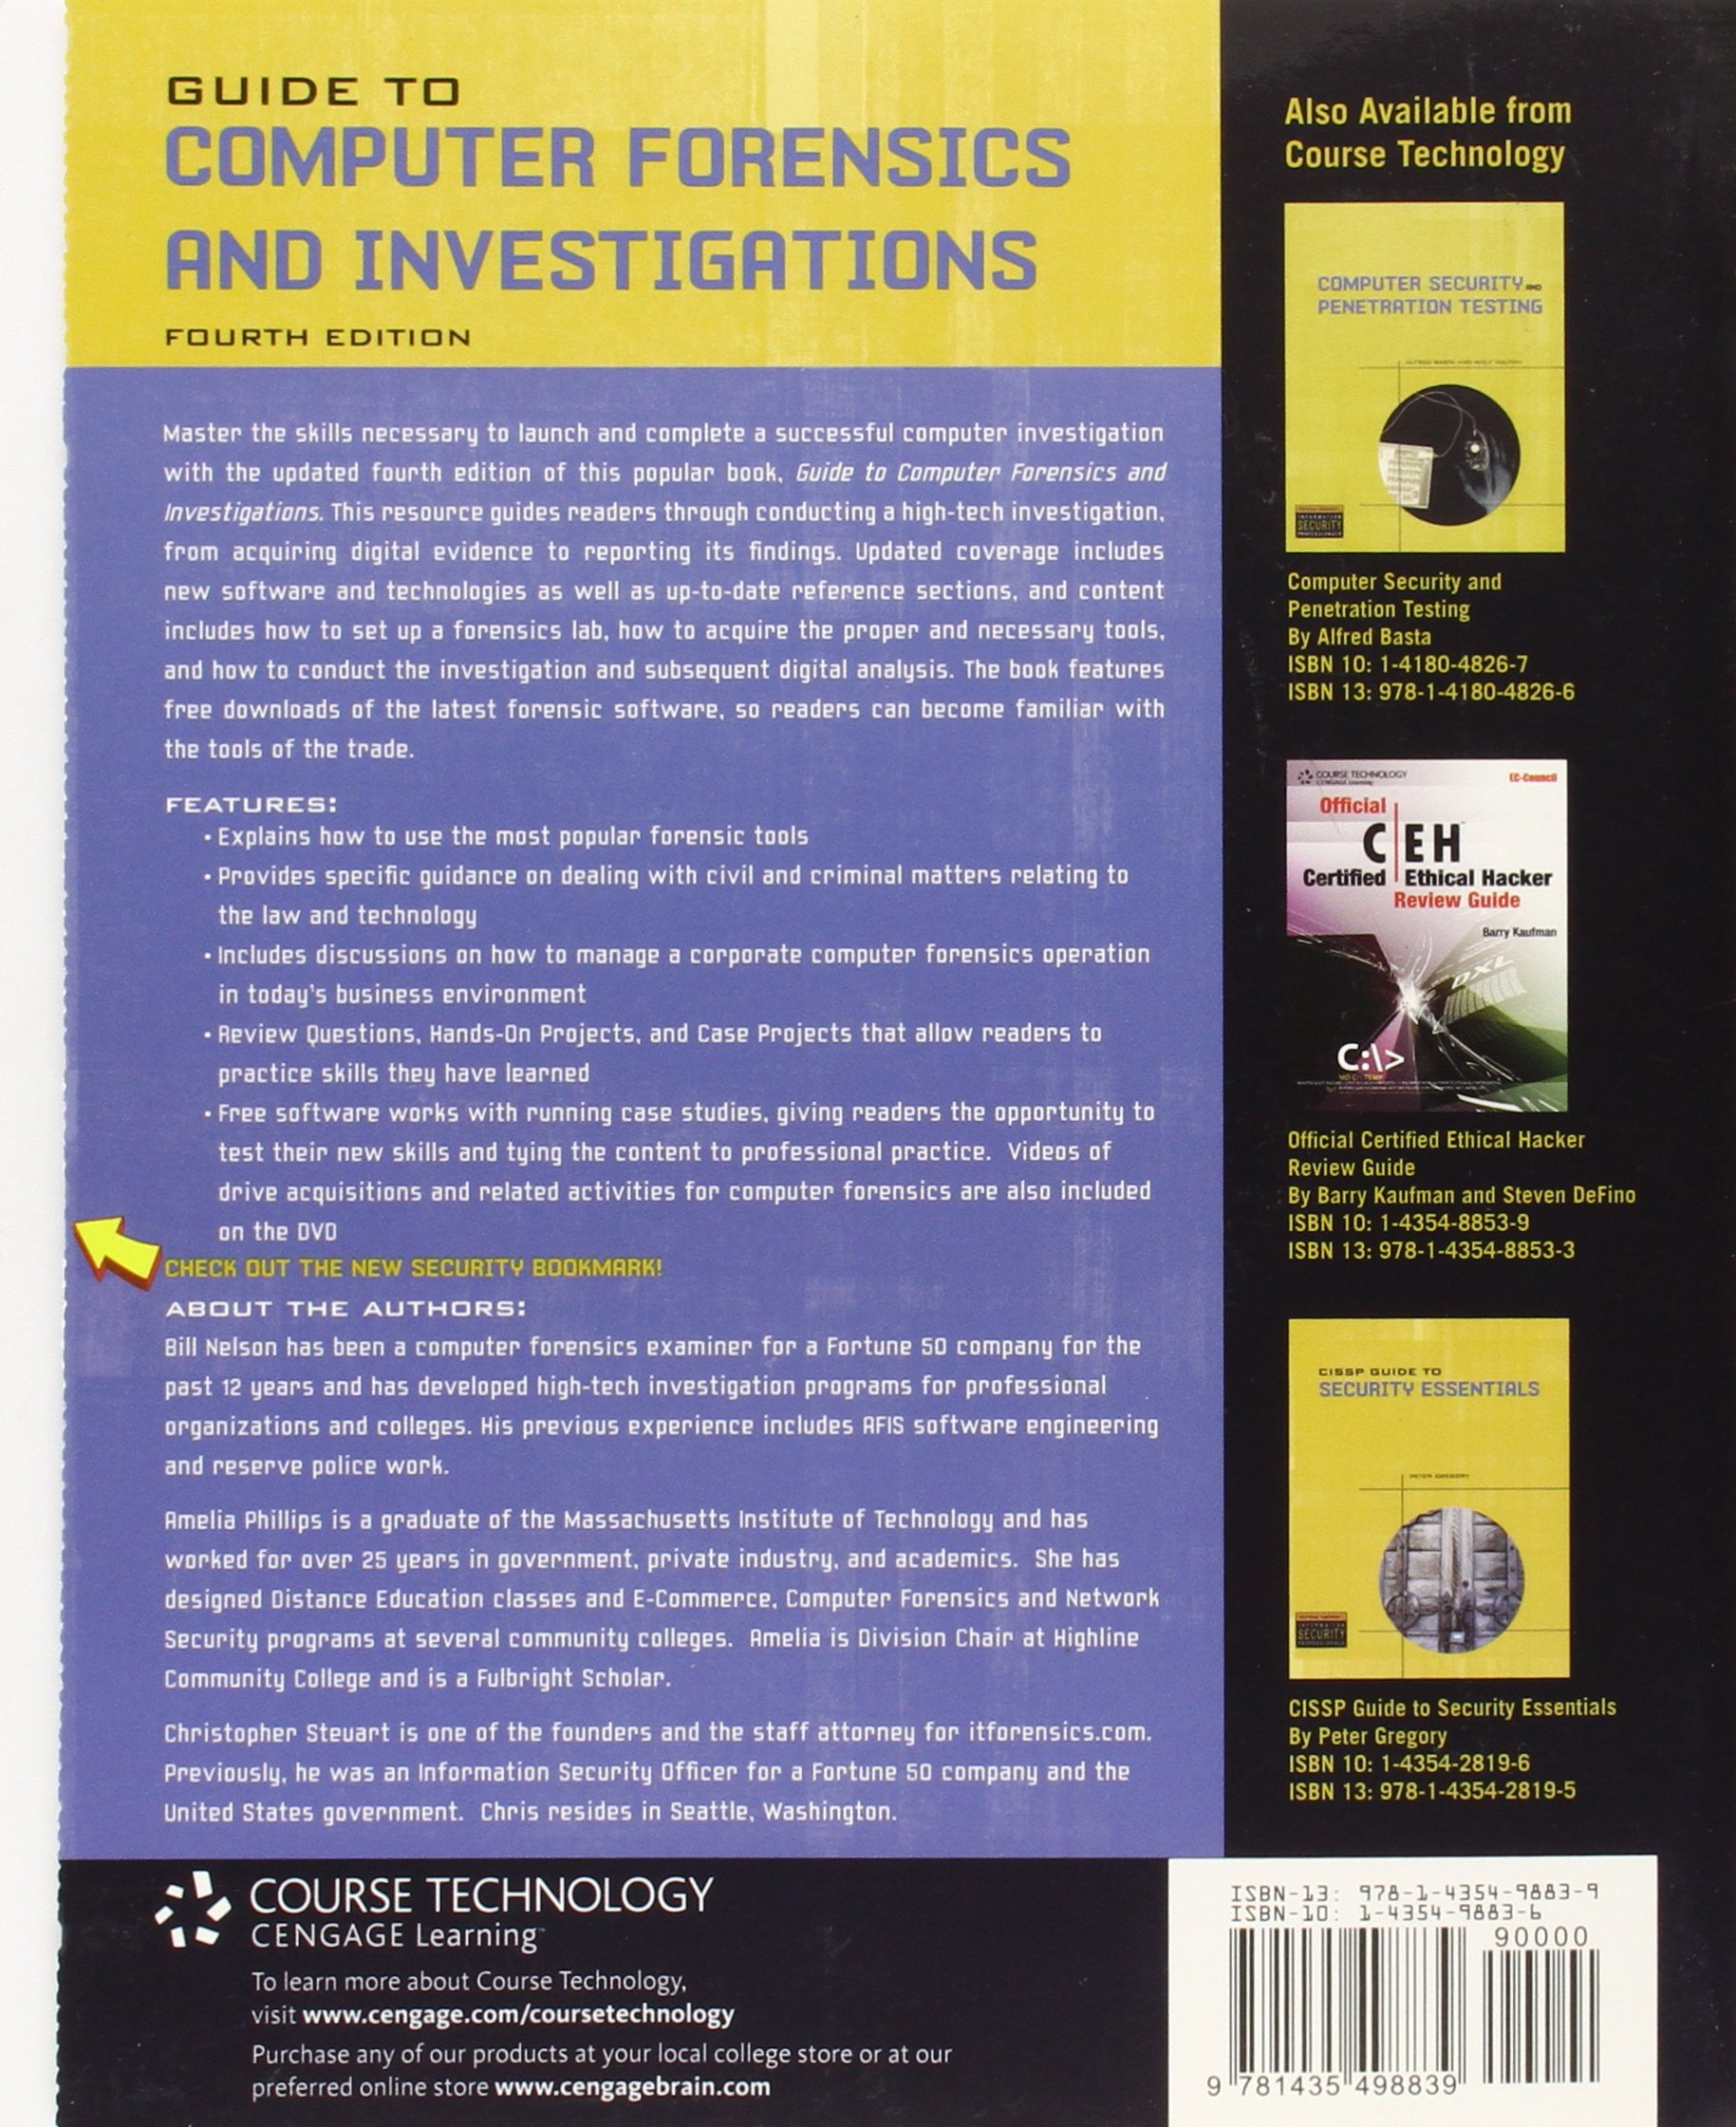 Guide to Computer Forensics and Investigations (Book & CD) by Course Technology